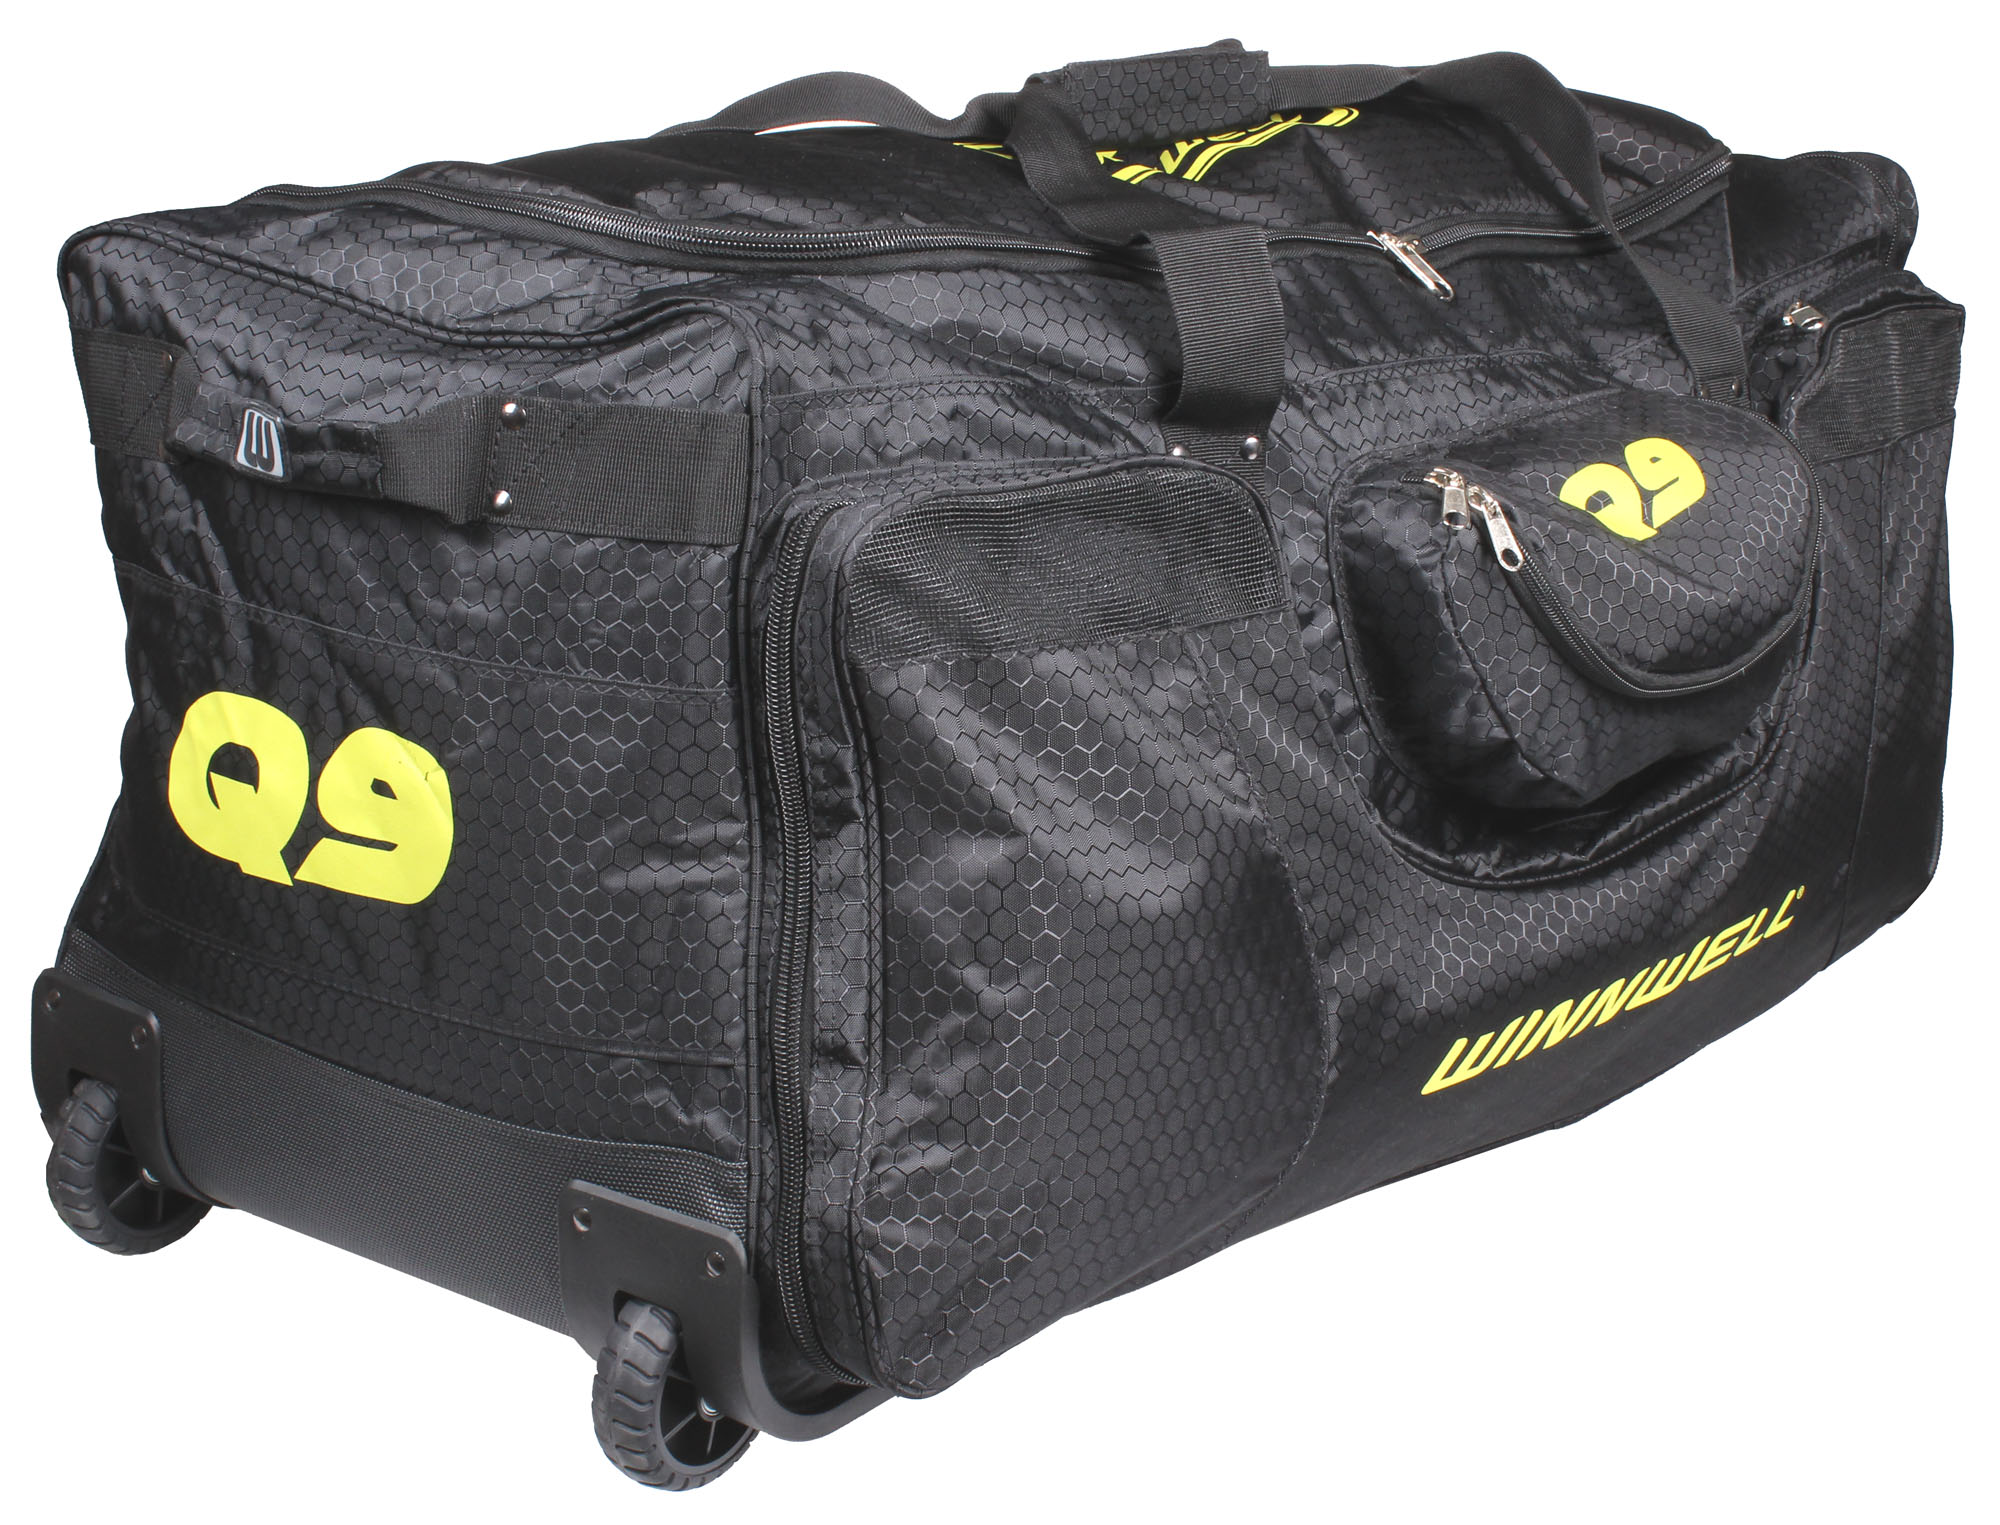 Taška Winnwell Q9 Wheel Bag JR. - black